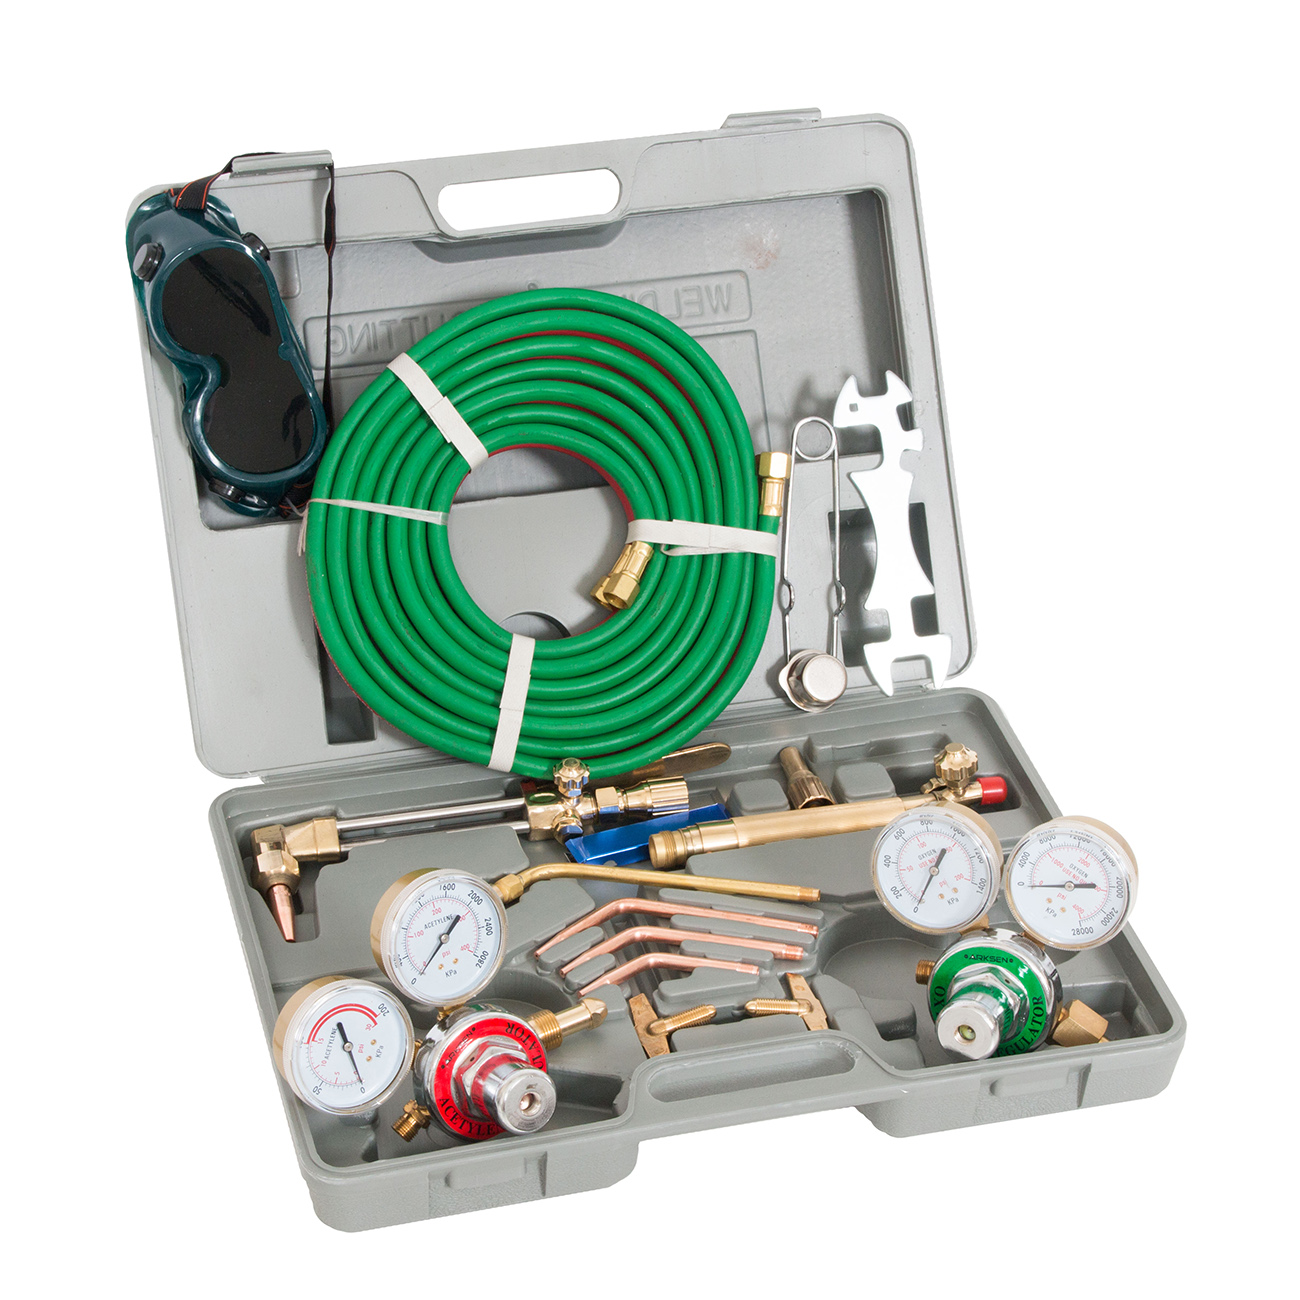 Arksen Harris-Type, Gas Welding & Cutting Torch Kit with Case, Professional Set